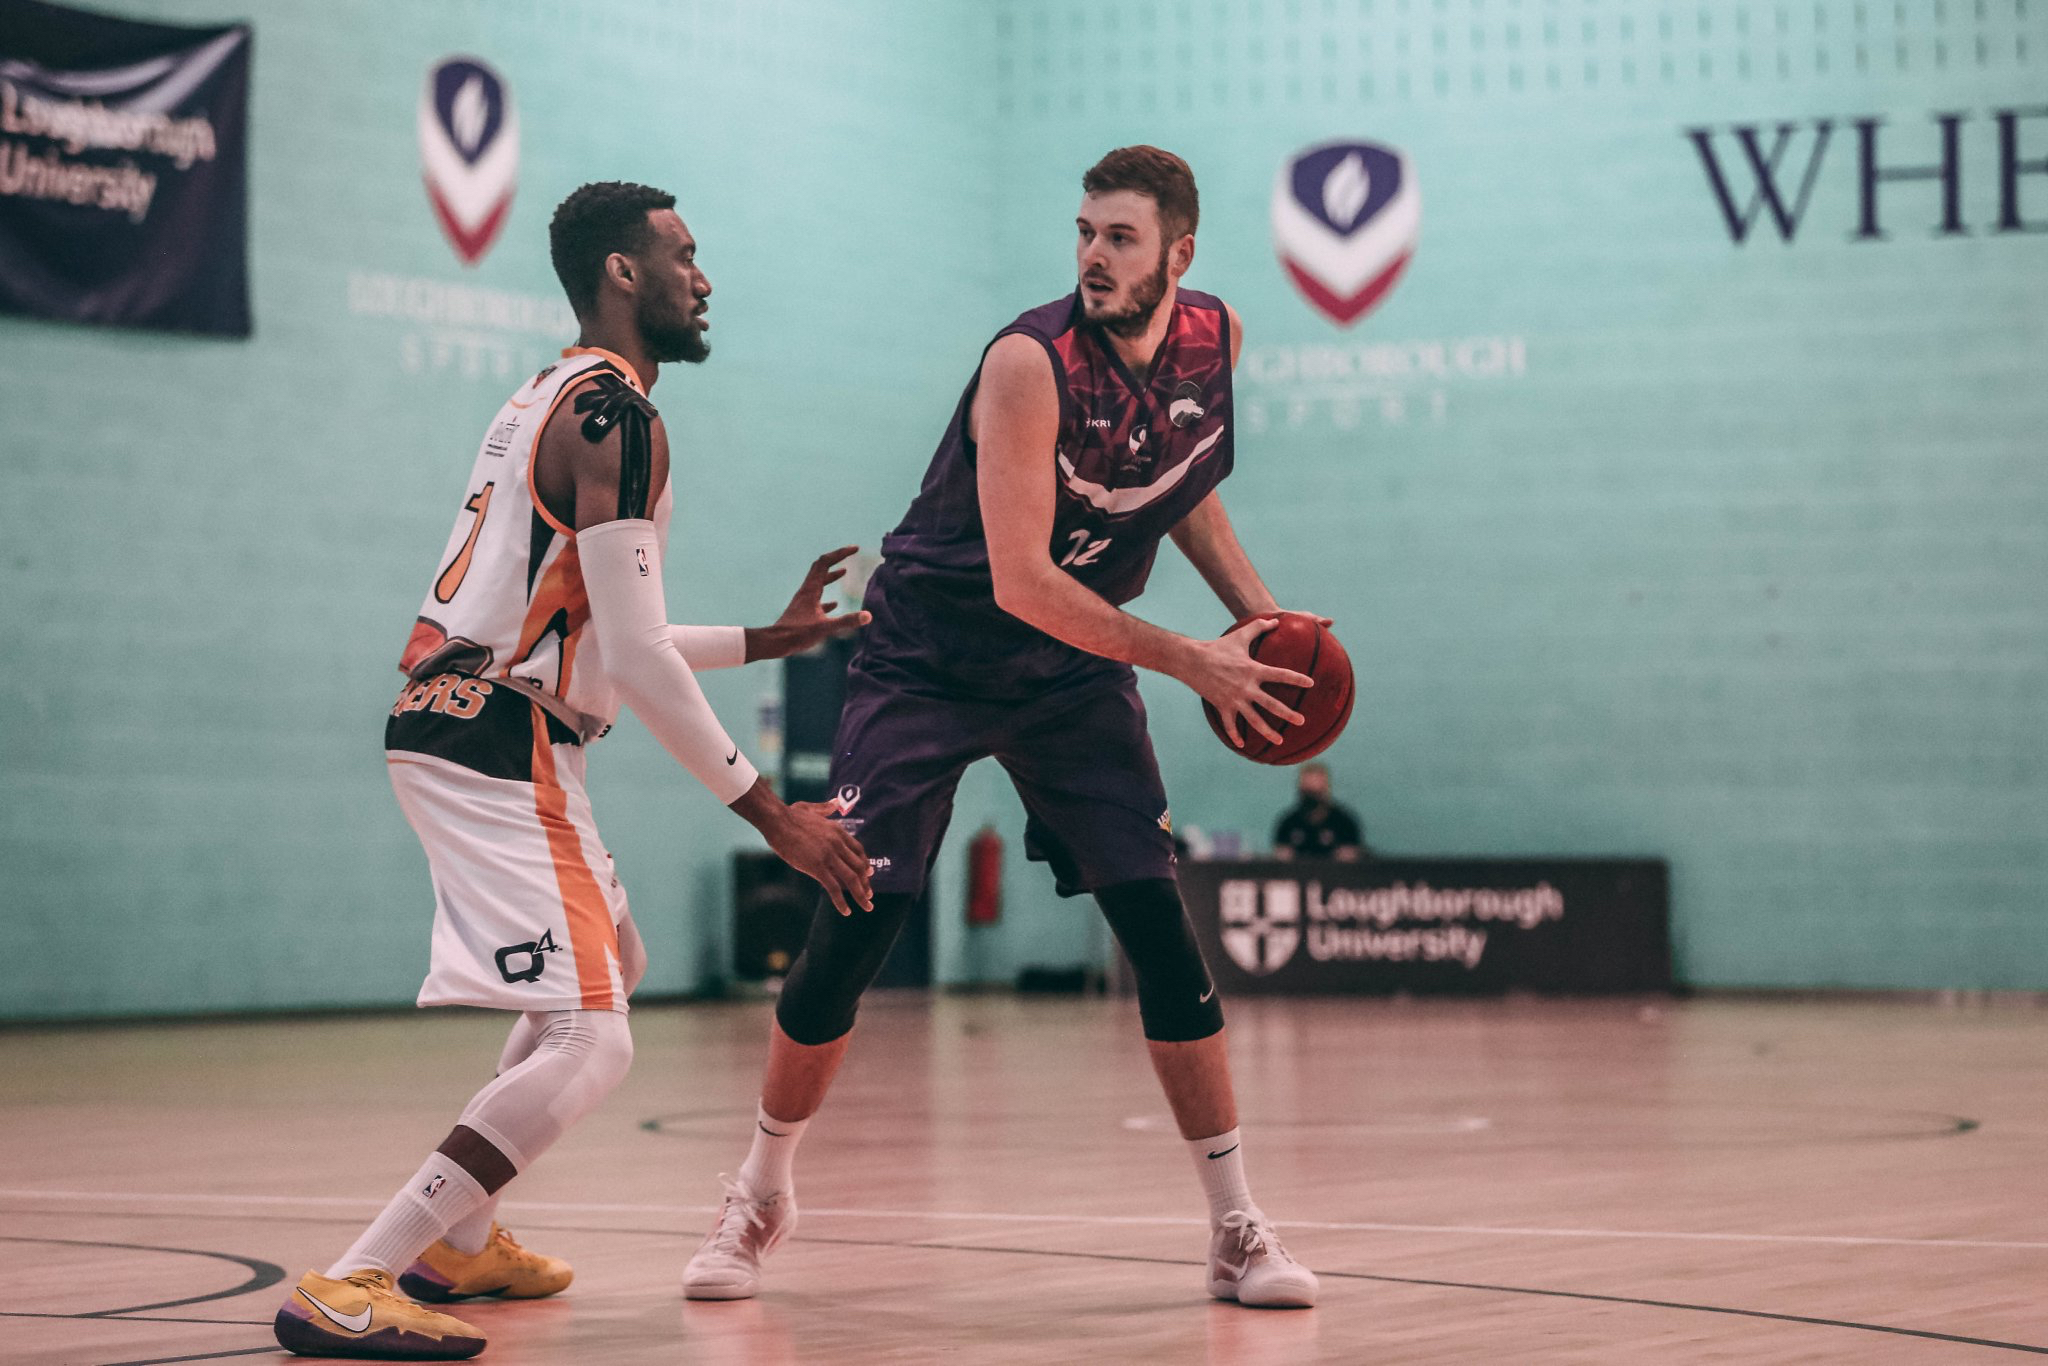 Riders lose to Thames Valley Cavaliers